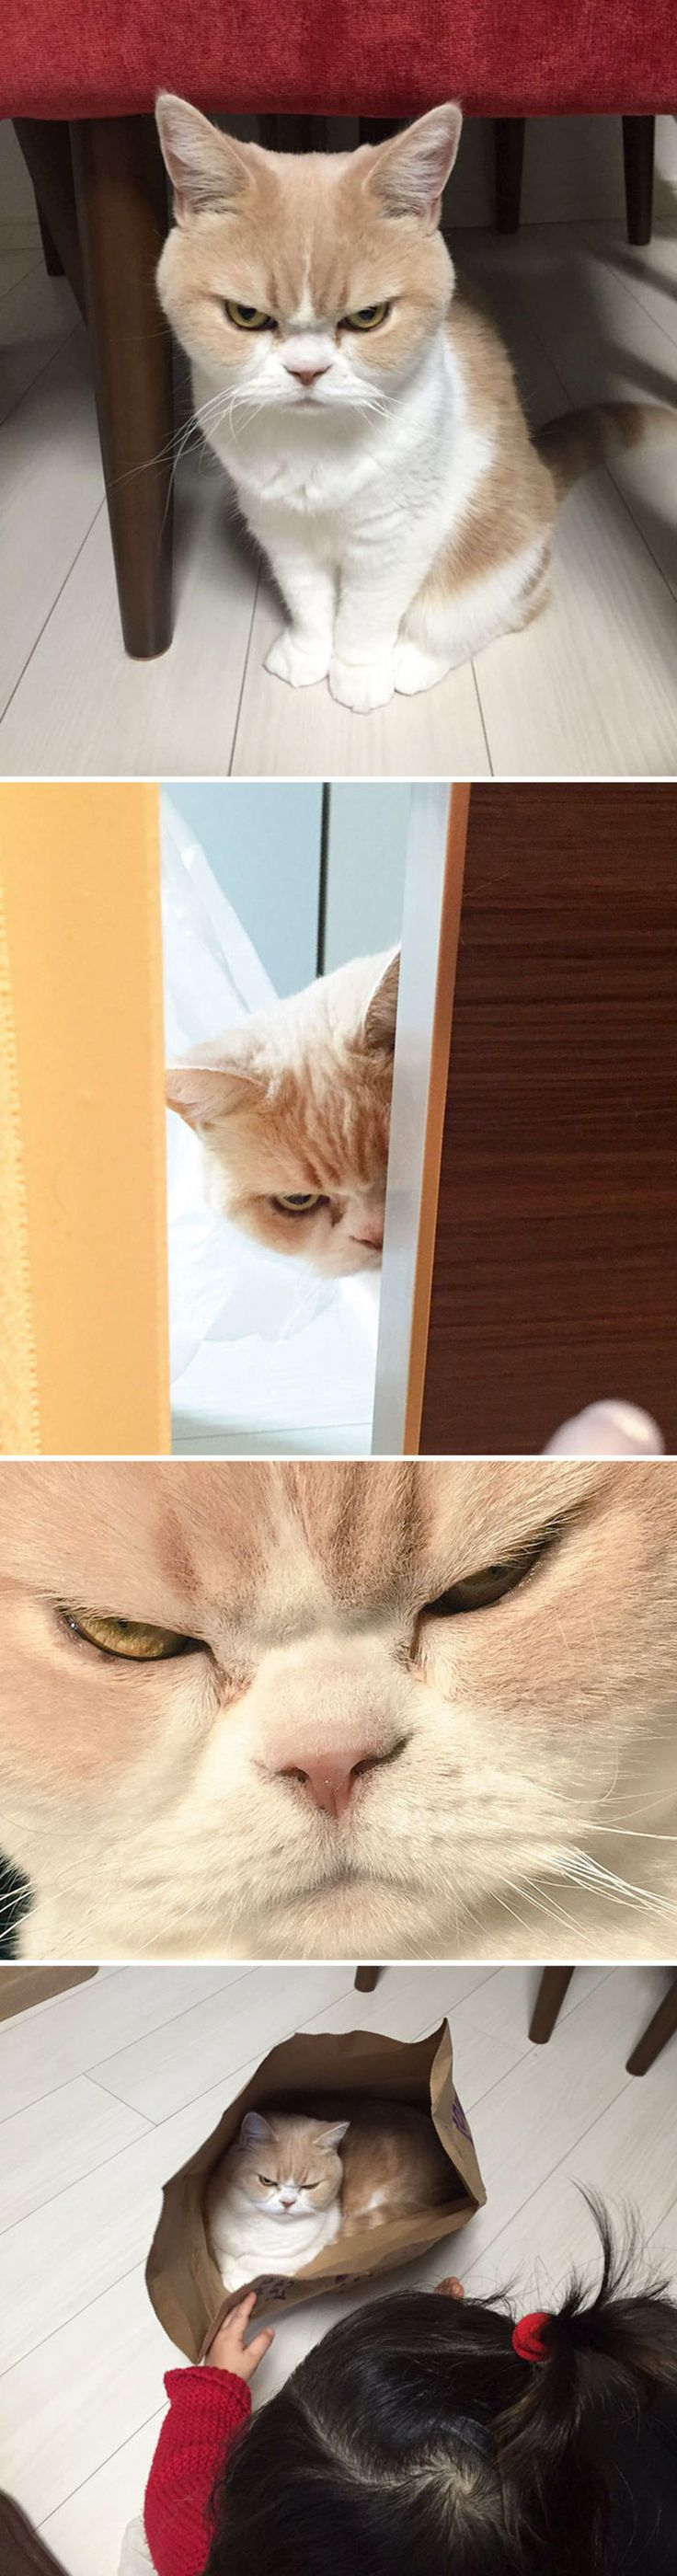 Die Besten Fed Up With Ideen Auf Pinterest Wutkunst Comic - 17 cats that are angry grumpy and fed up with everything